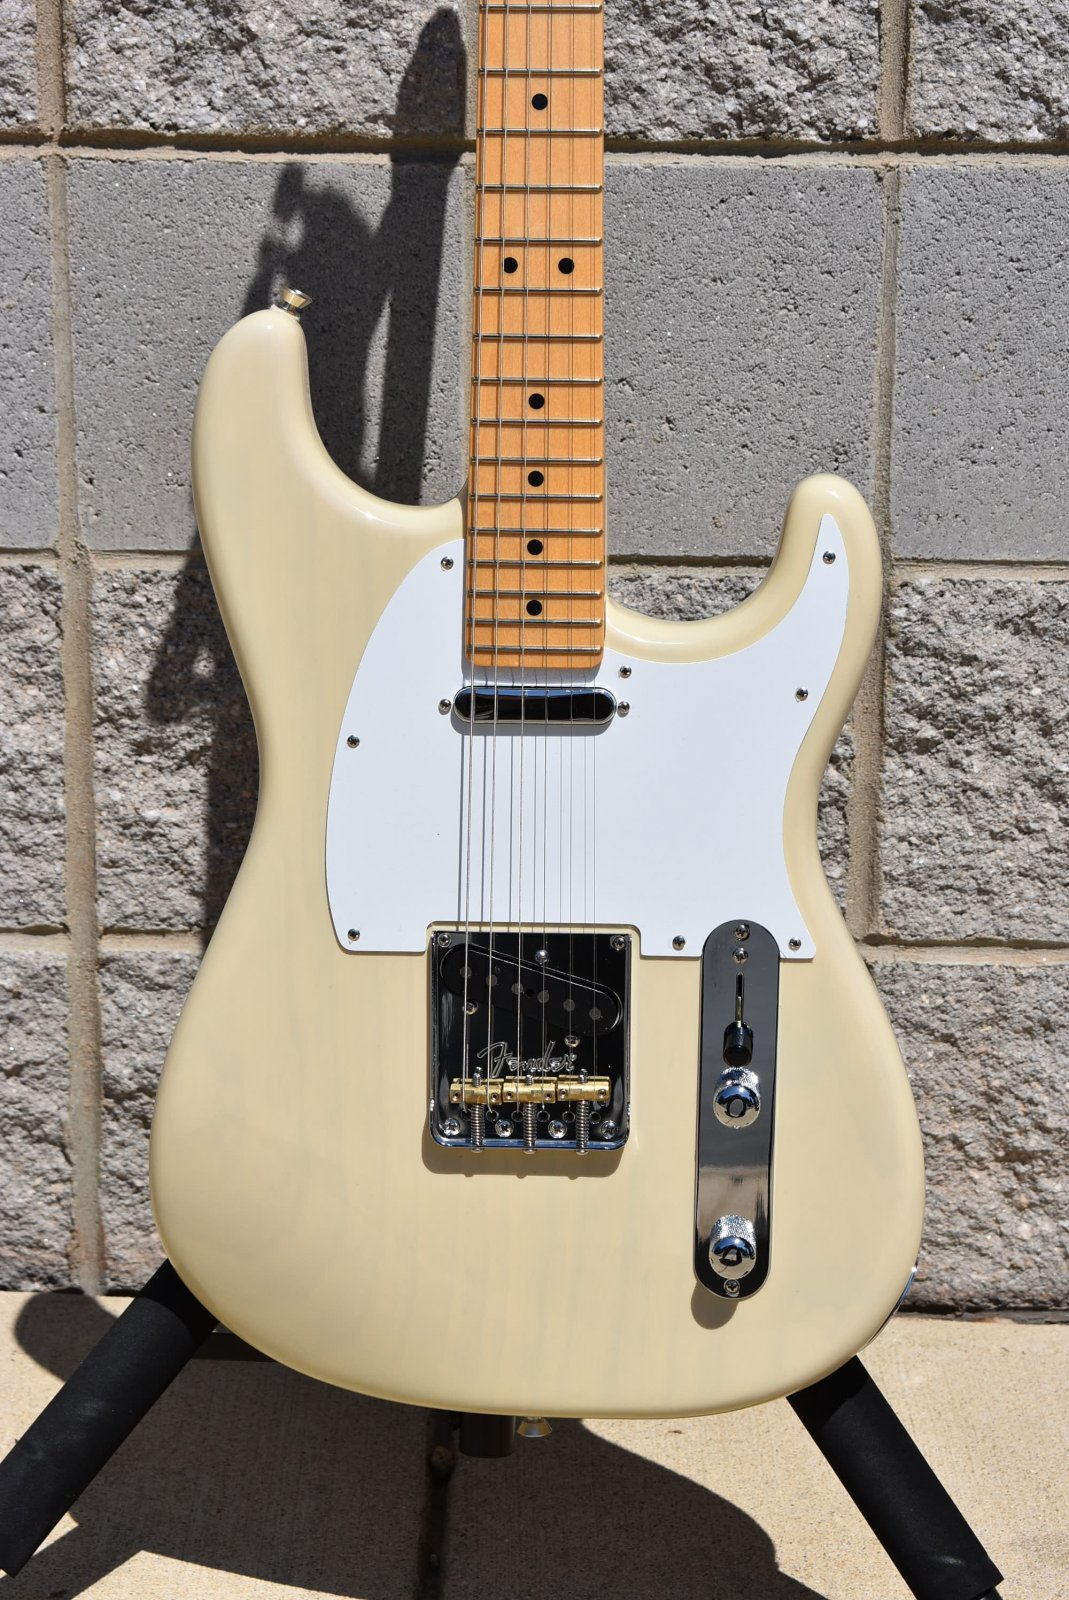 2018 Fender Limited Edition Parallel Universe Whiteguard Stratocaster